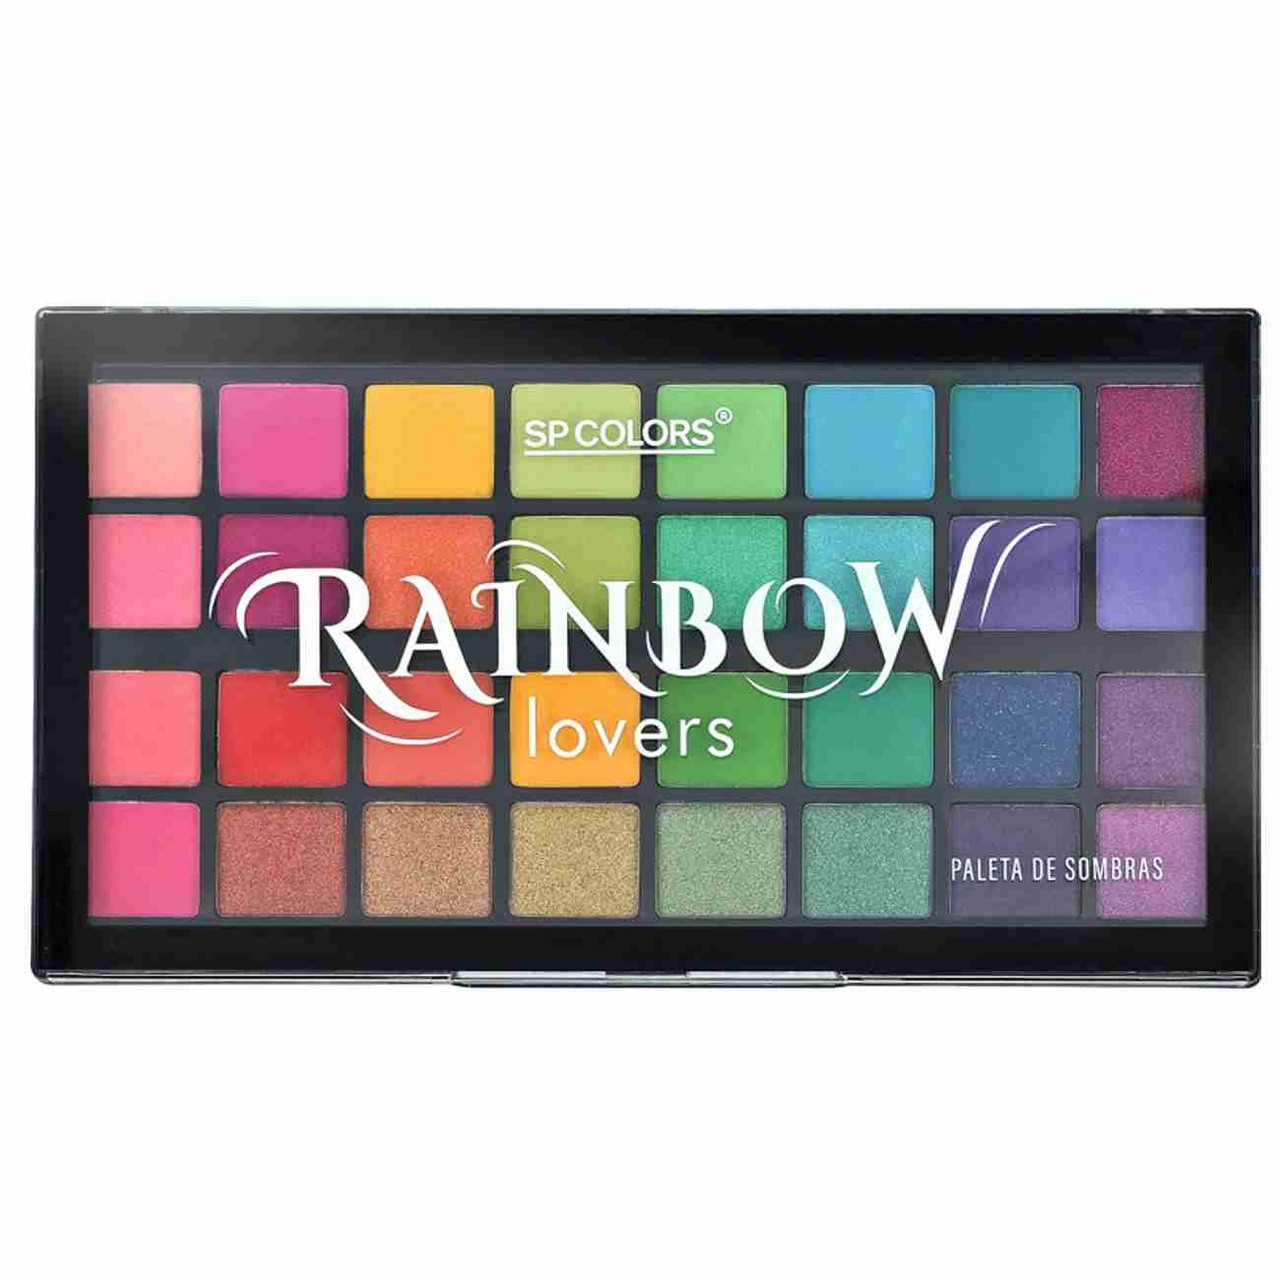 Paleta de Sombras 32 Cores SP Colors Rainbow Lovers